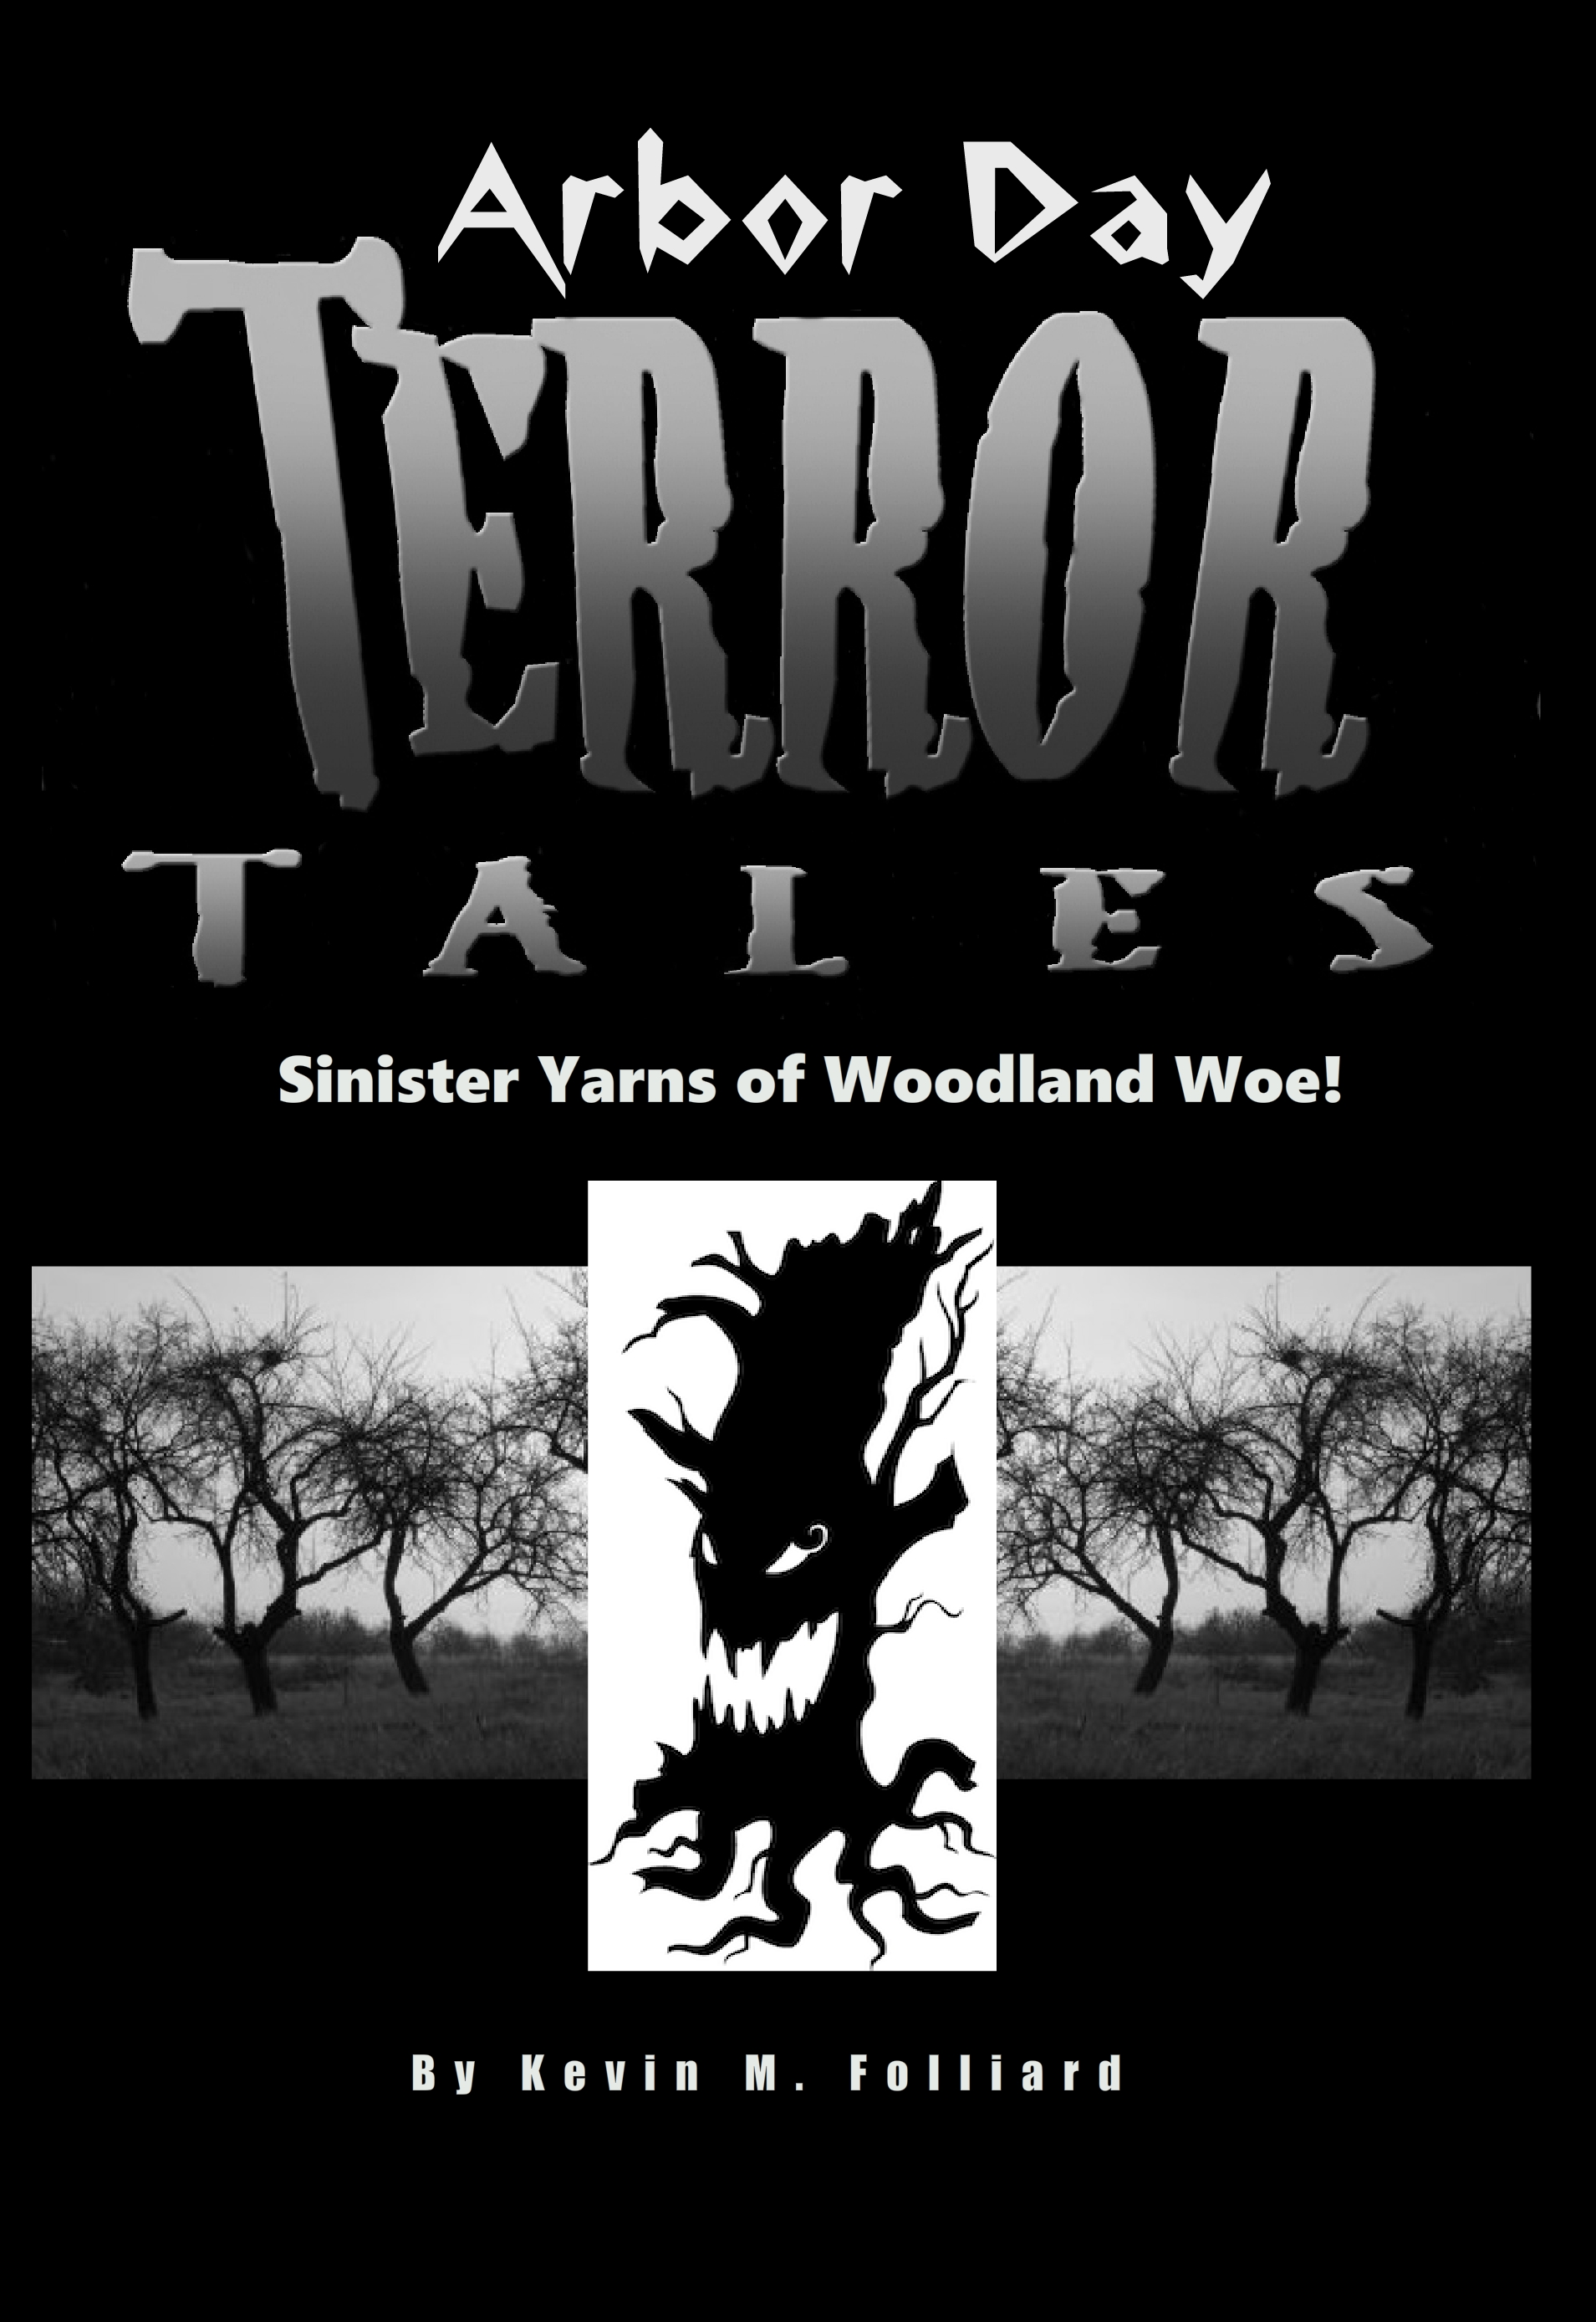 Arbor Day Terror Tales is on sale at Amazon now! (Seriously!)